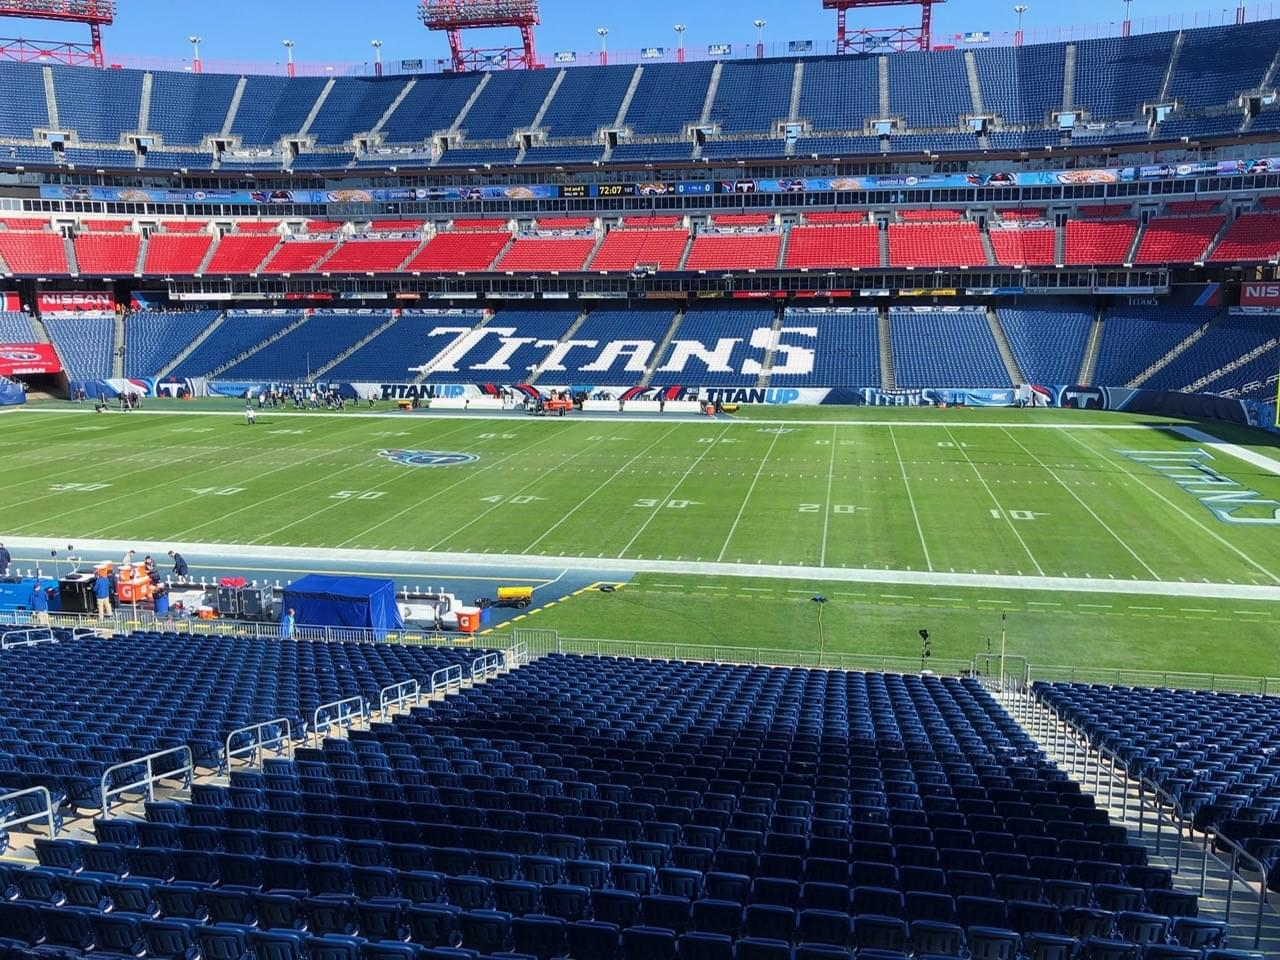 Change is coming after Jaguars routed again in 42-20 loss to Titans